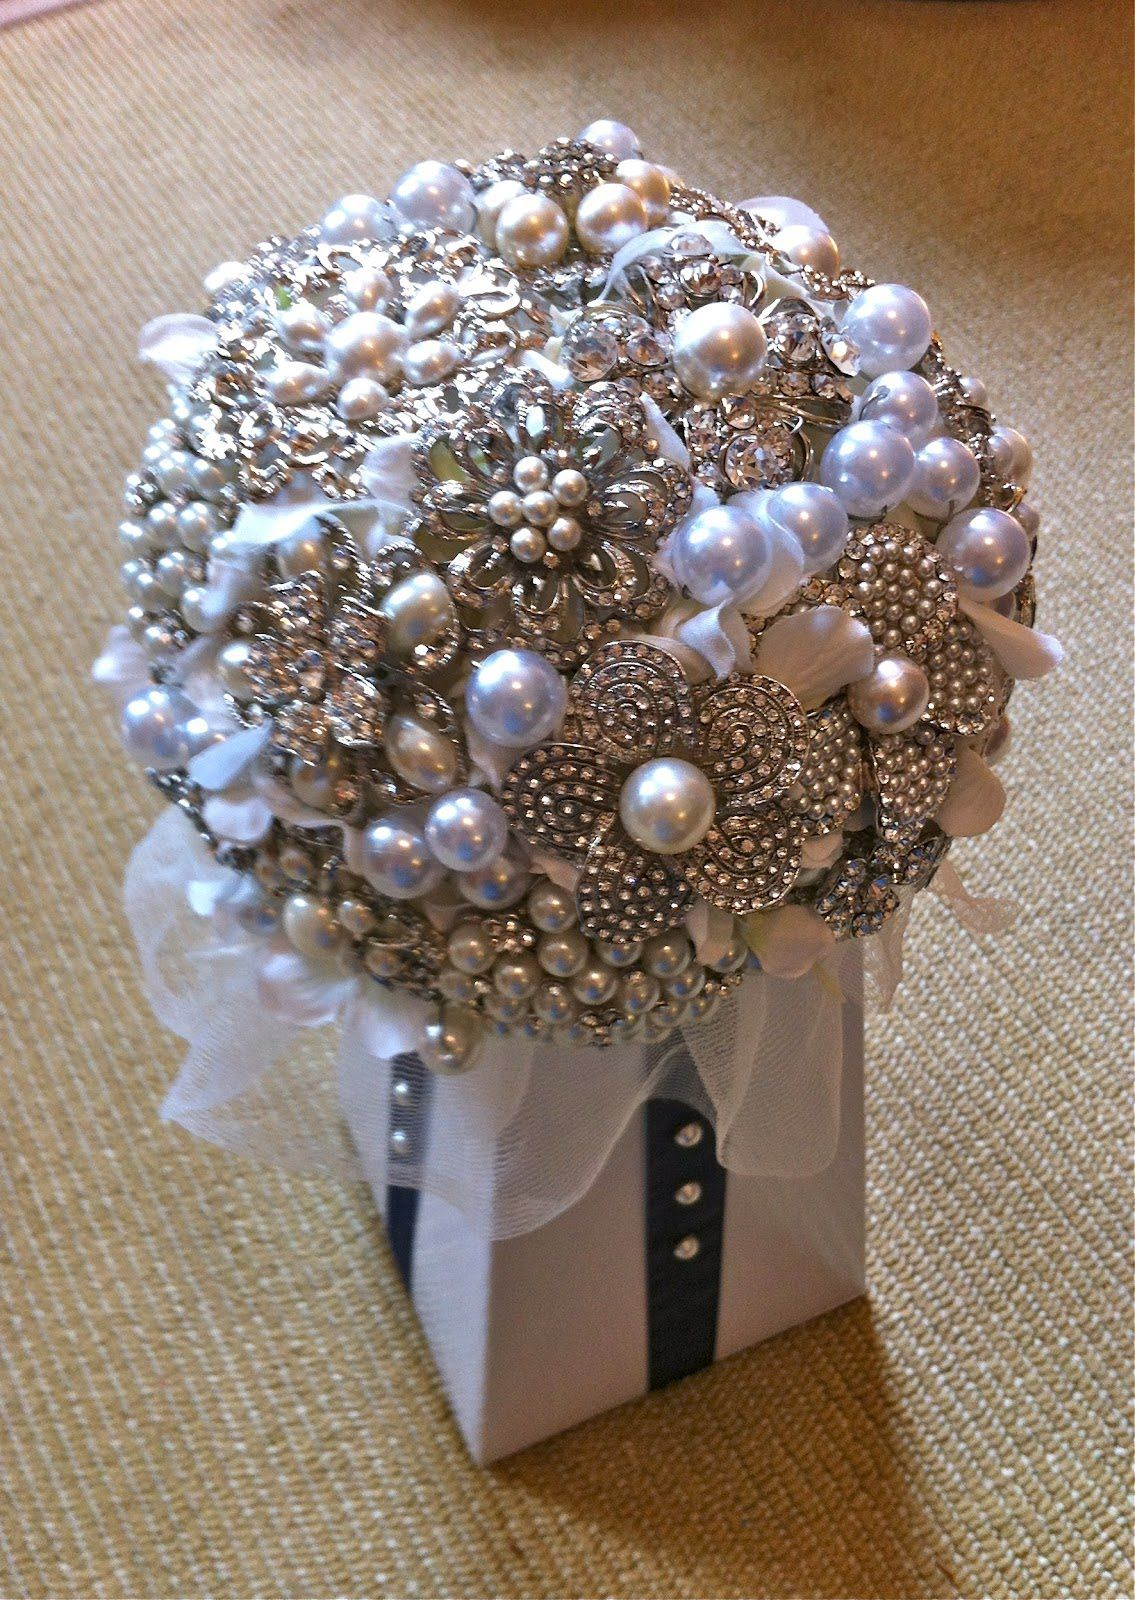 How to diy brooch bouquet video part 1 the best tutorial on how to how to diy brooch bouquet video part 1 the best tutorial on how to make your own great tips and clear explanations izmirmasajfo